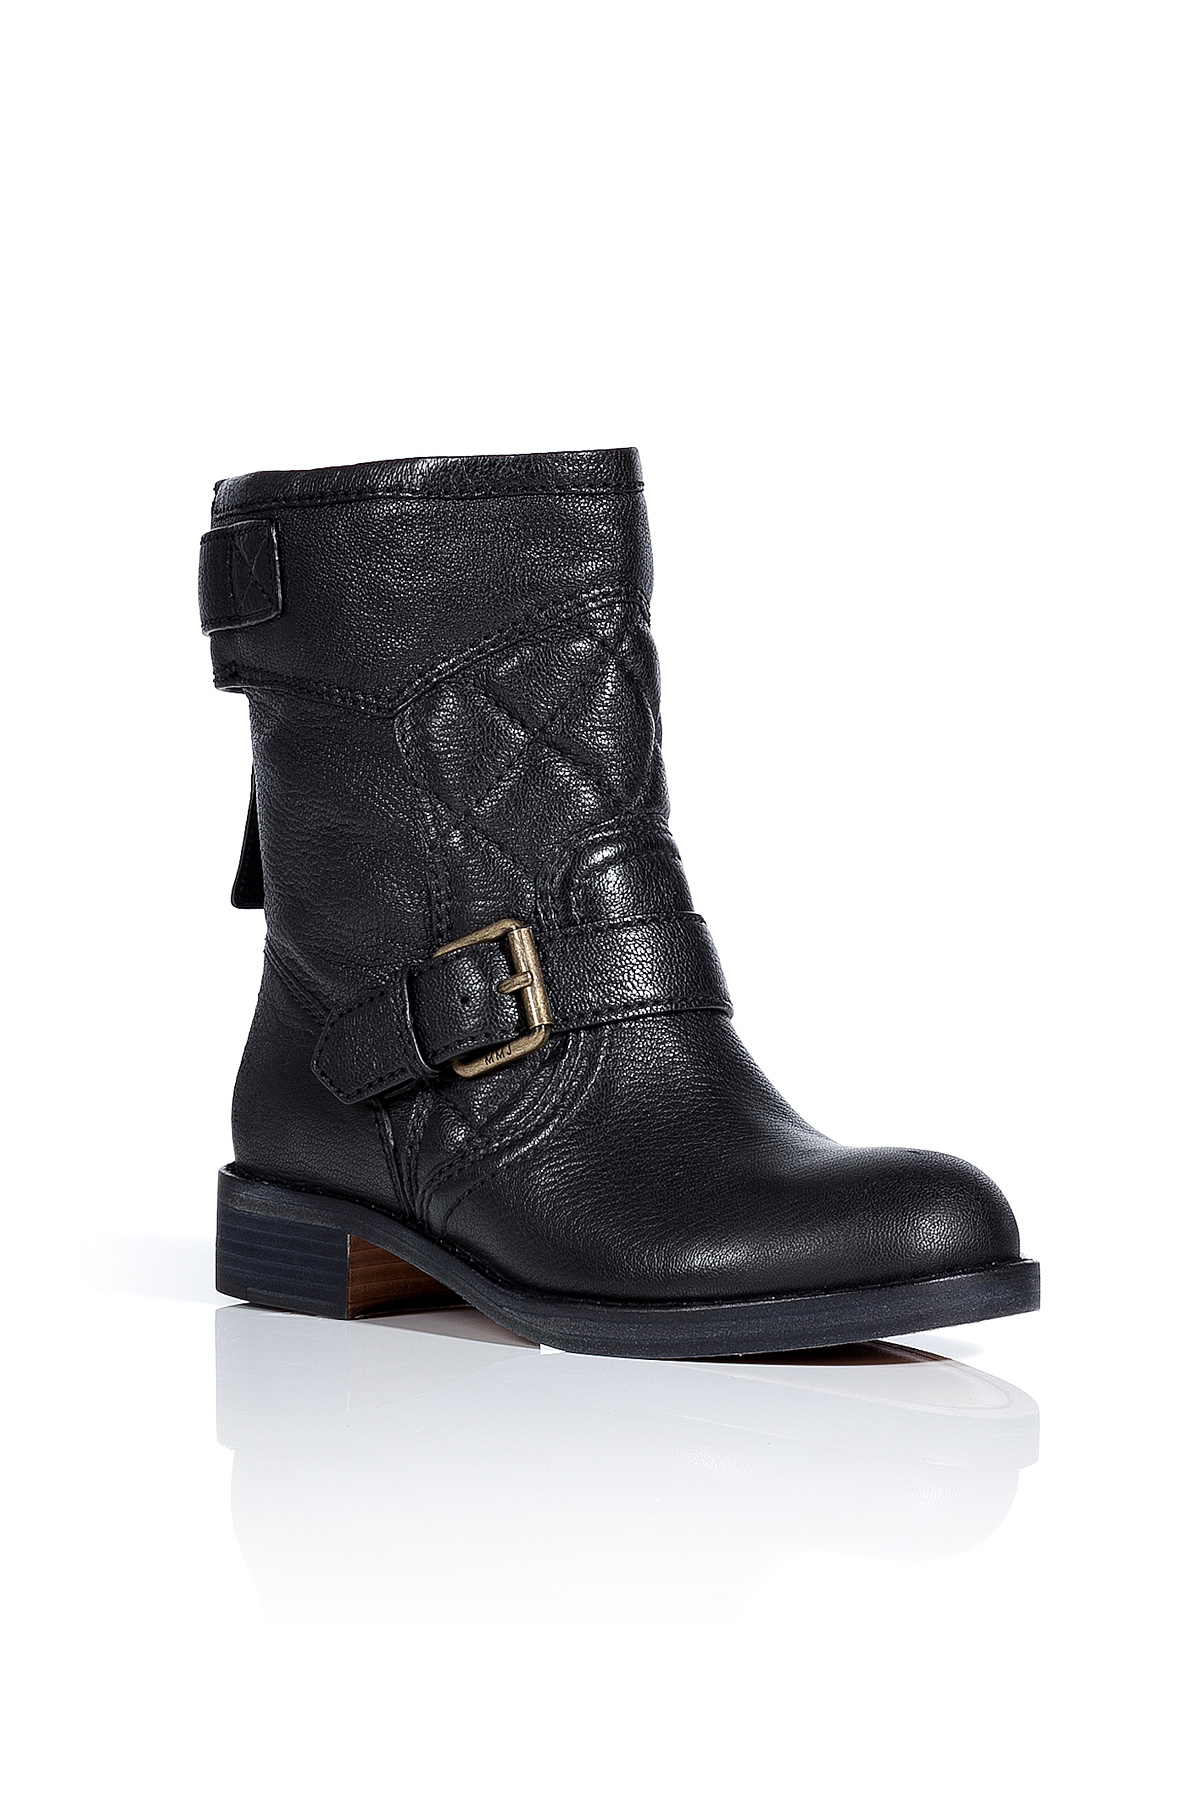 marc by marc black quilted leather biker boots in